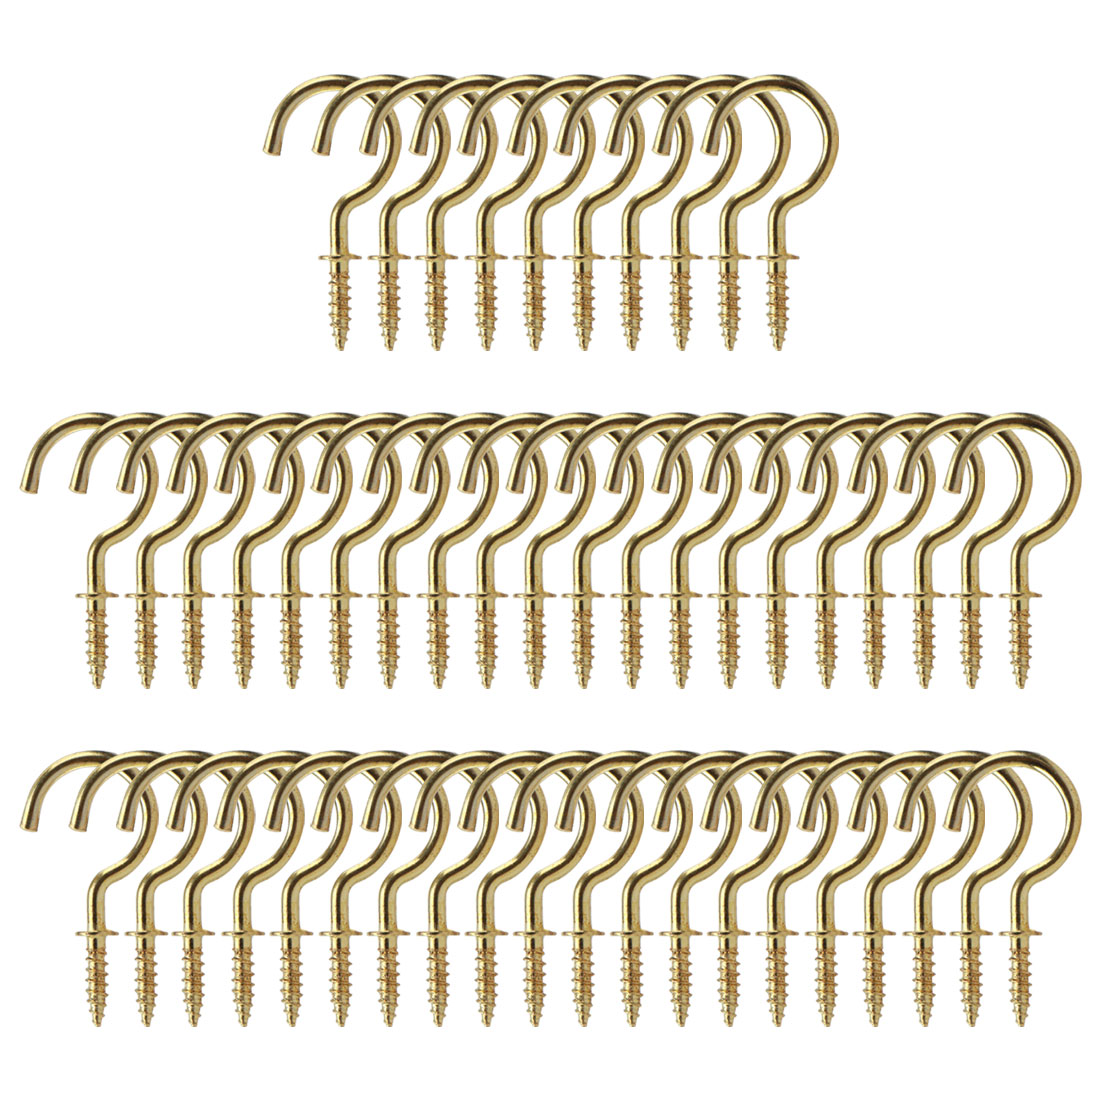 50pcs Cup Ceiling Hooks 1 Inch Copper Plating Screw Holder Gold Tone